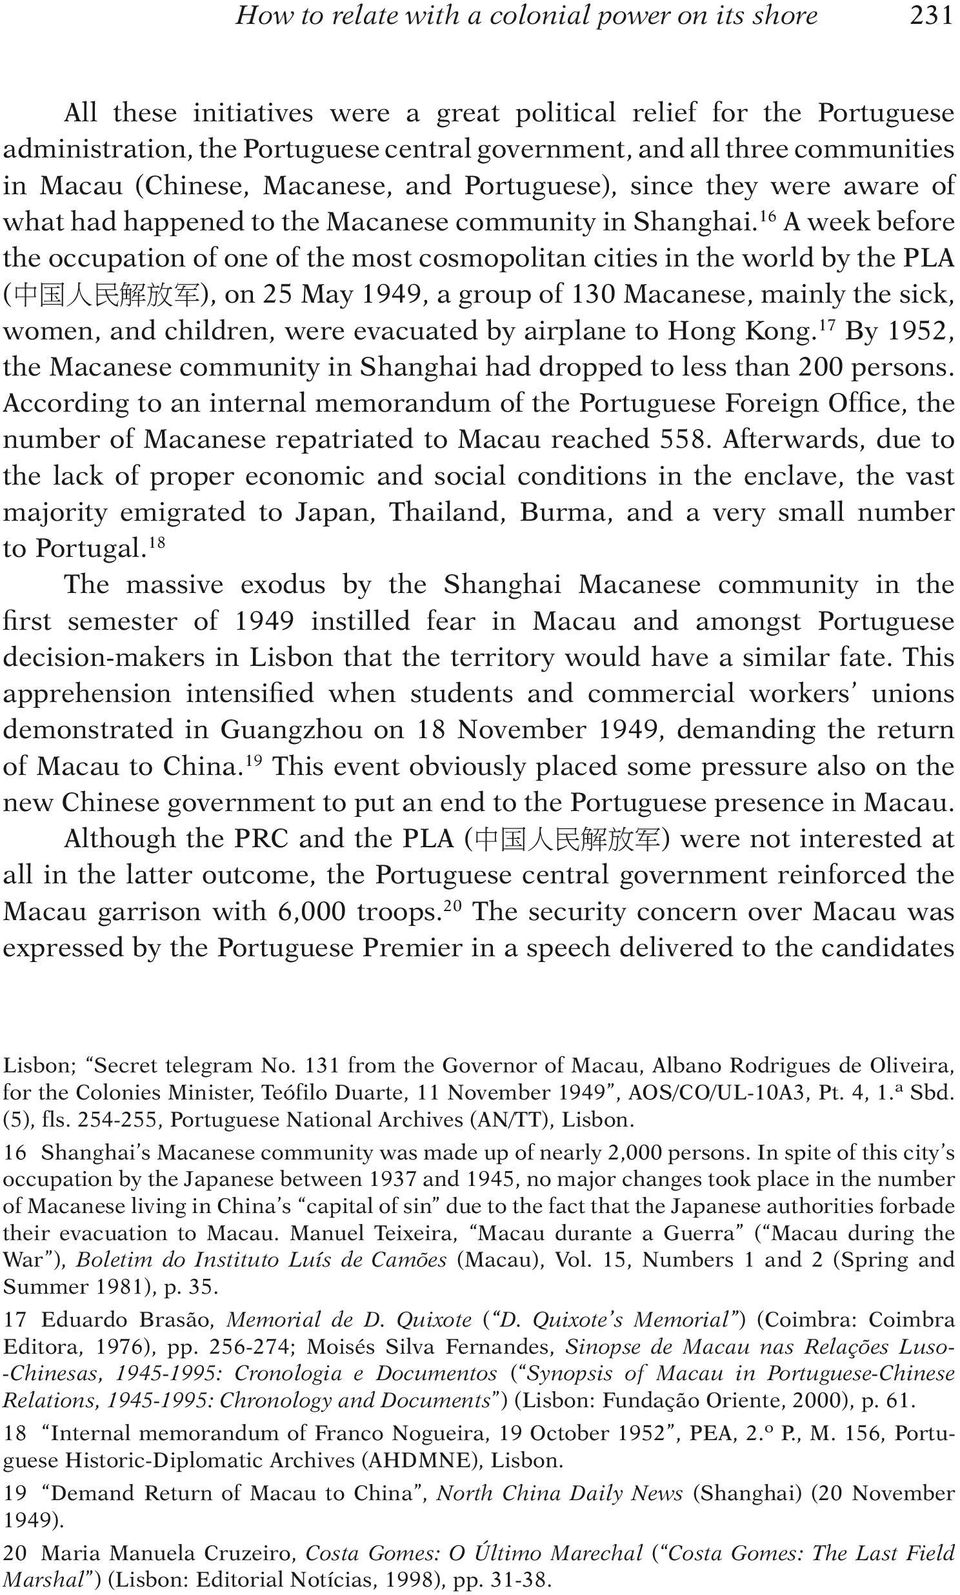 16 A week before the occupation of one of the most cosmopolitan cities in the world by the PLA ( 中 国 人 民 解 放 军 ), on 25 May 1949, a group of 130 Macanese, mainly the sick, women, and children, were